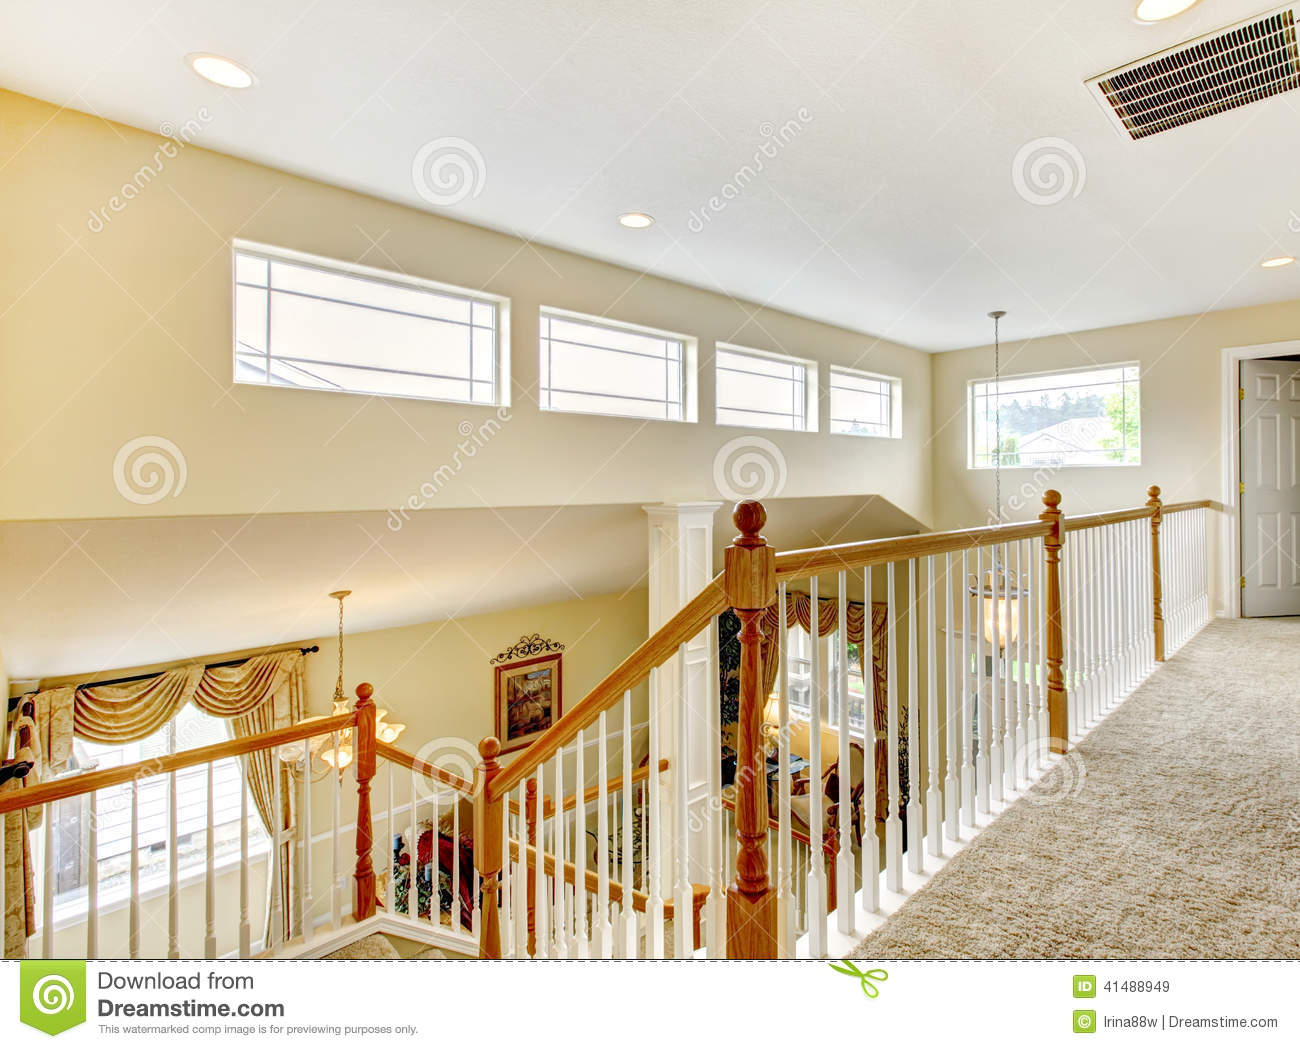 House Inteior With Indoor Balcony Stock Photo Image